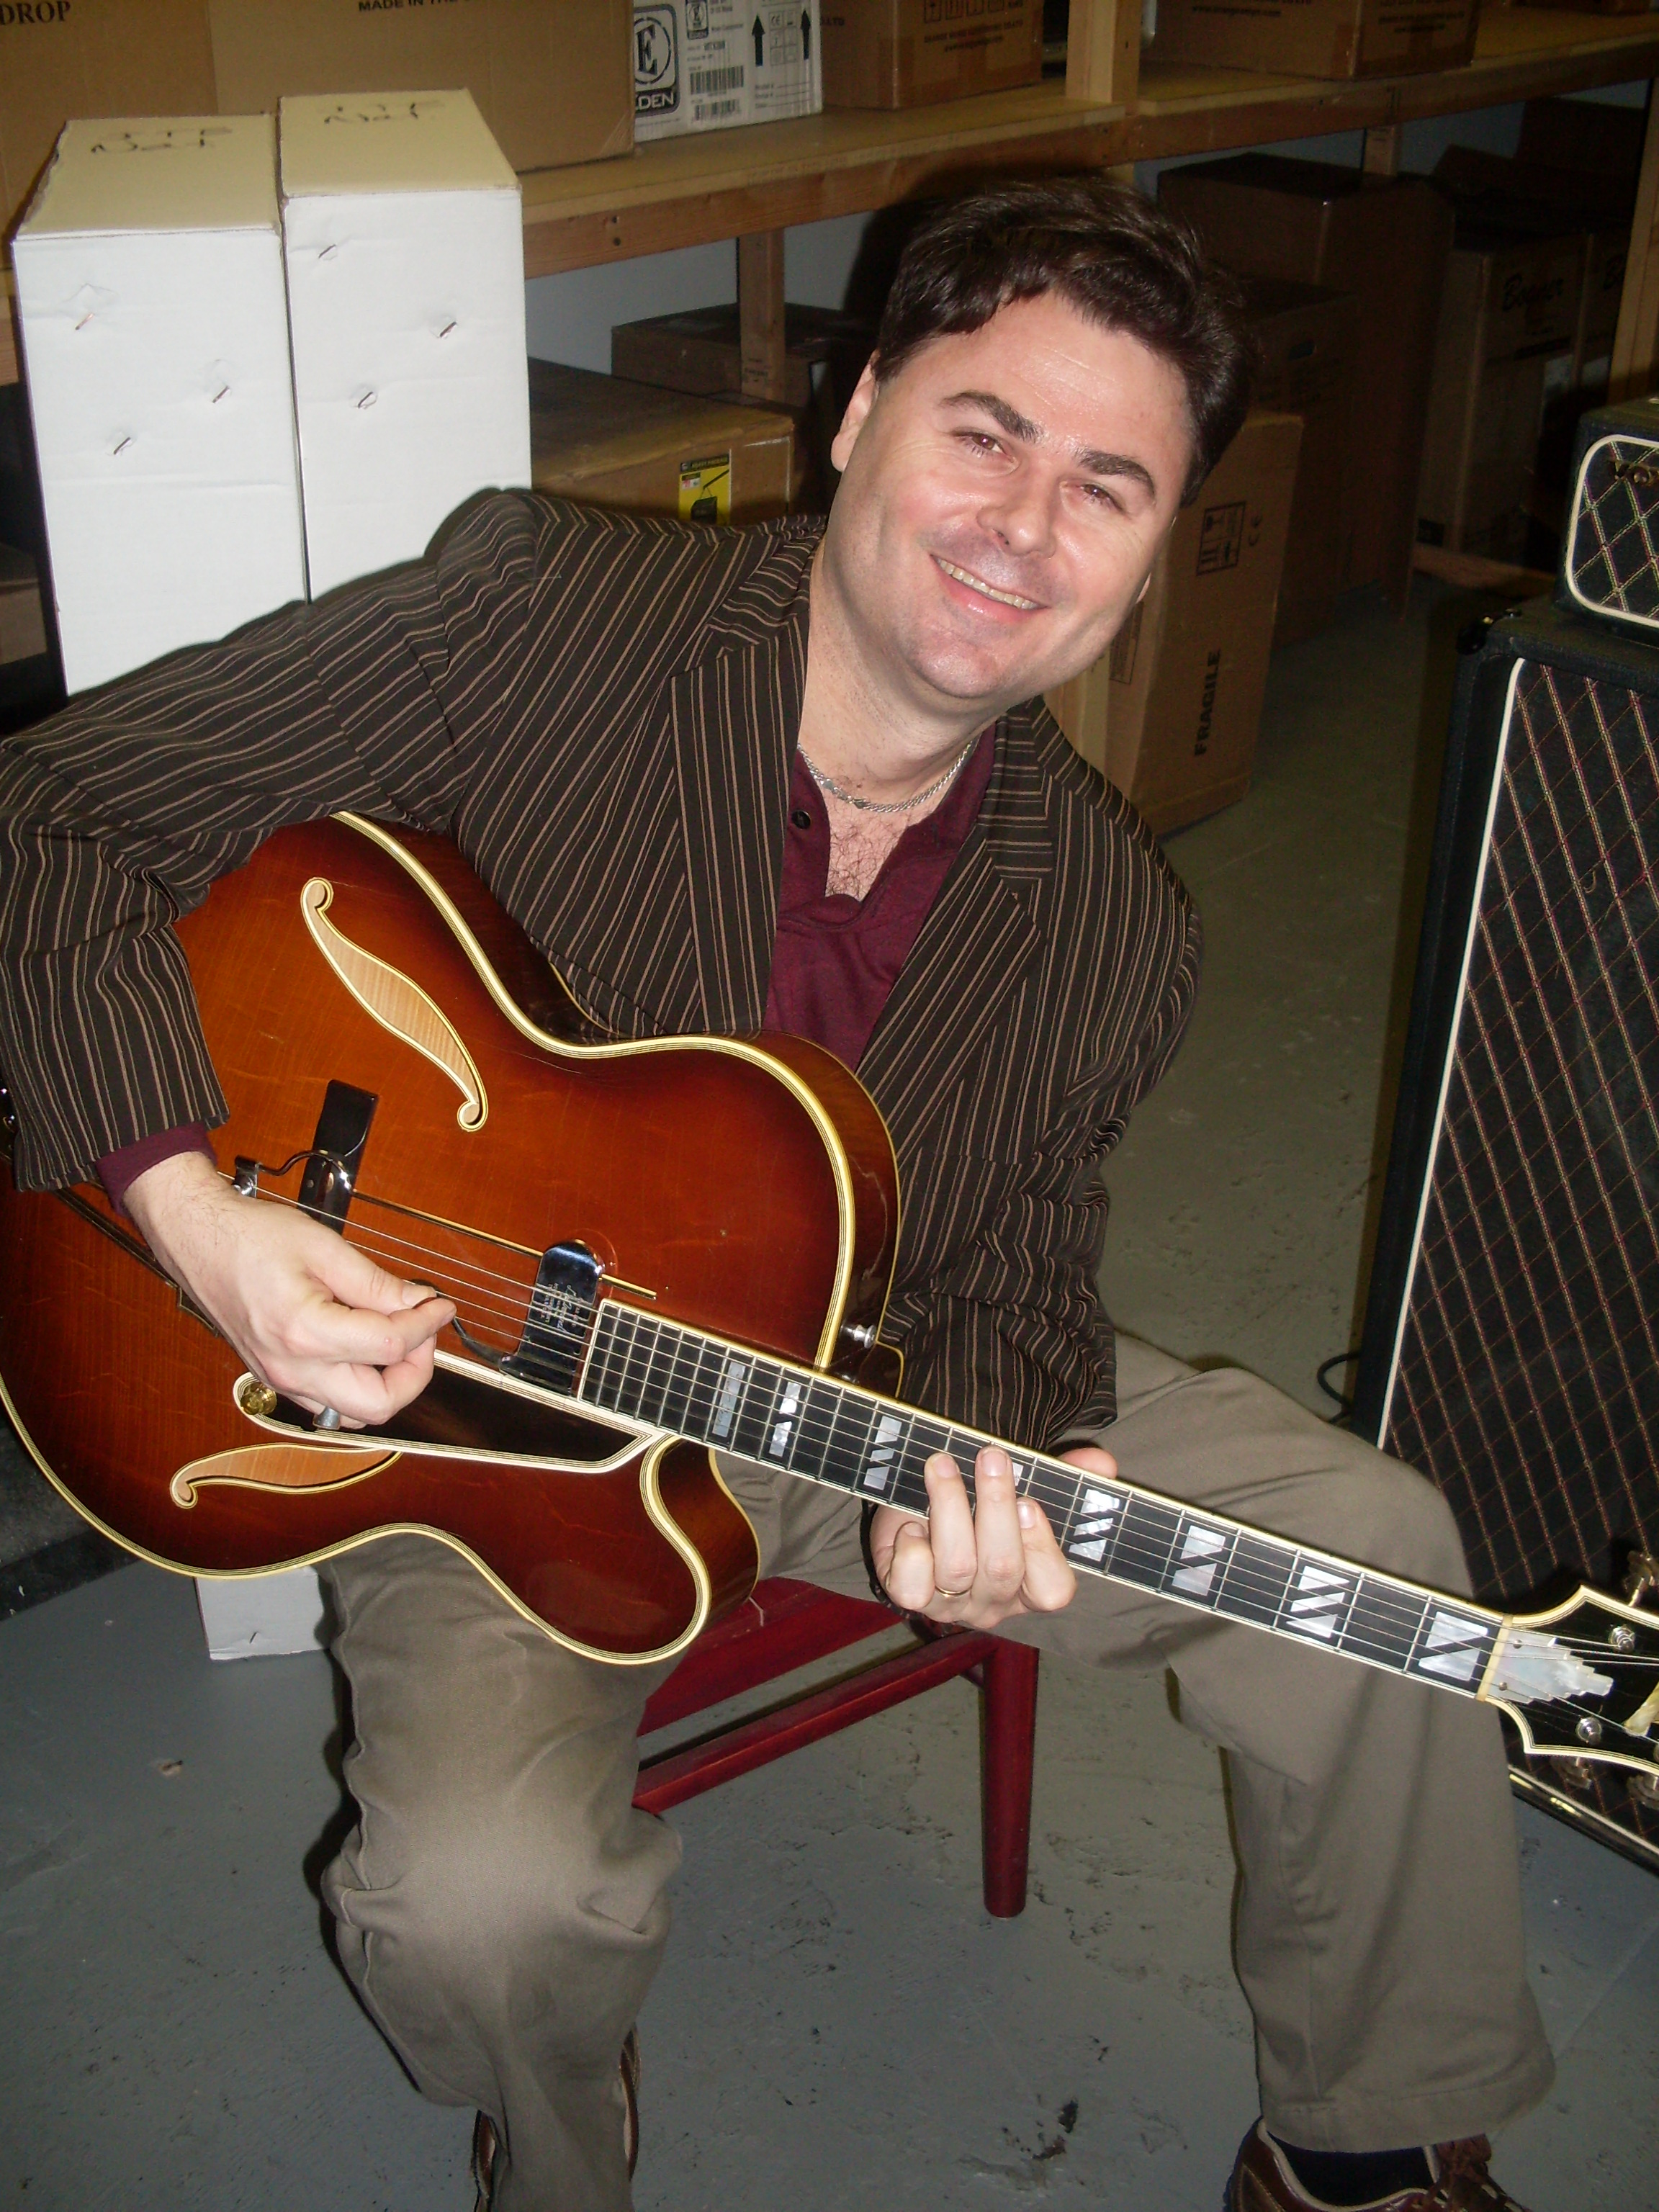 JC Stylles with Grant Greens Guitar